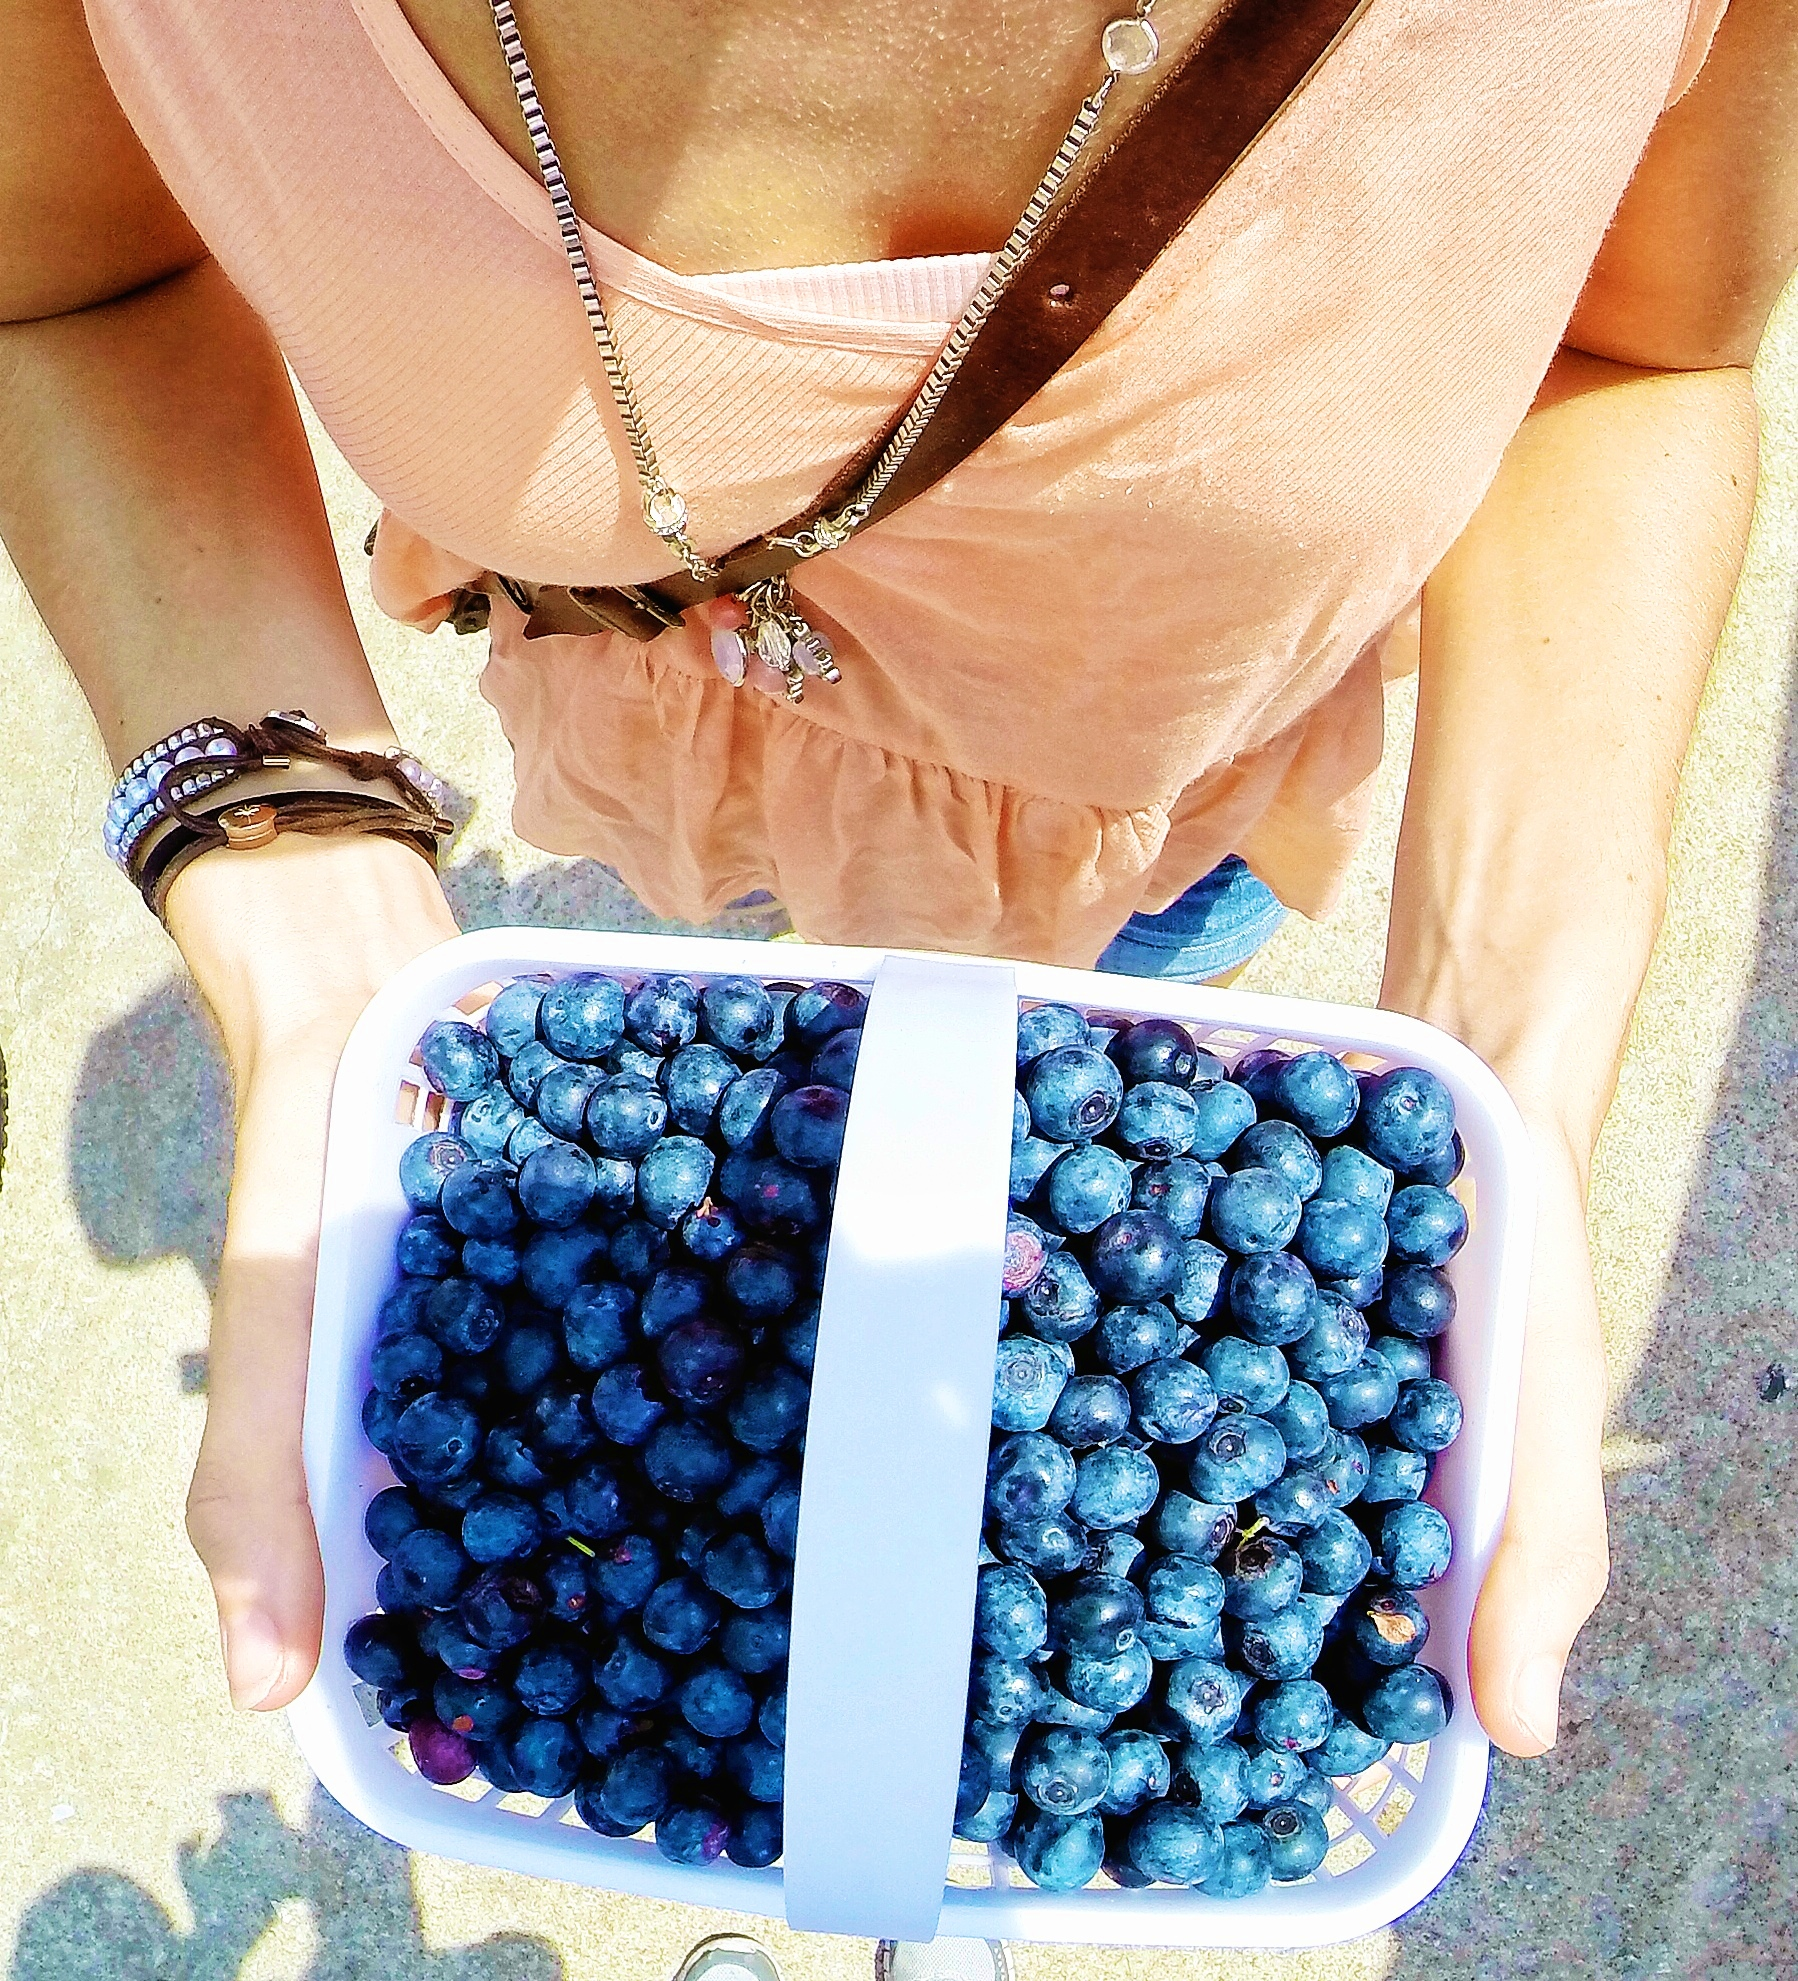 fresh blueberries local